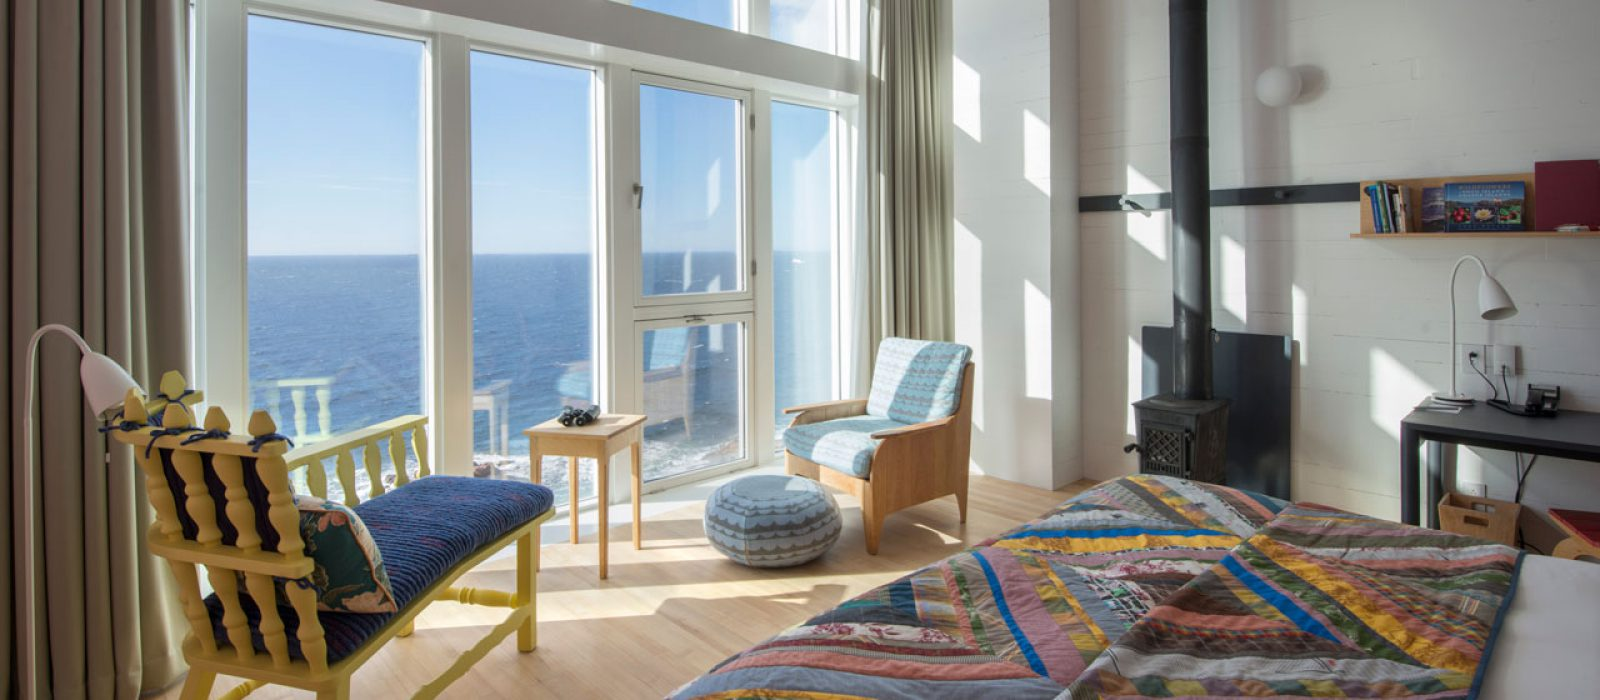 View out the ocean facing windows at the Fogo Island Inn